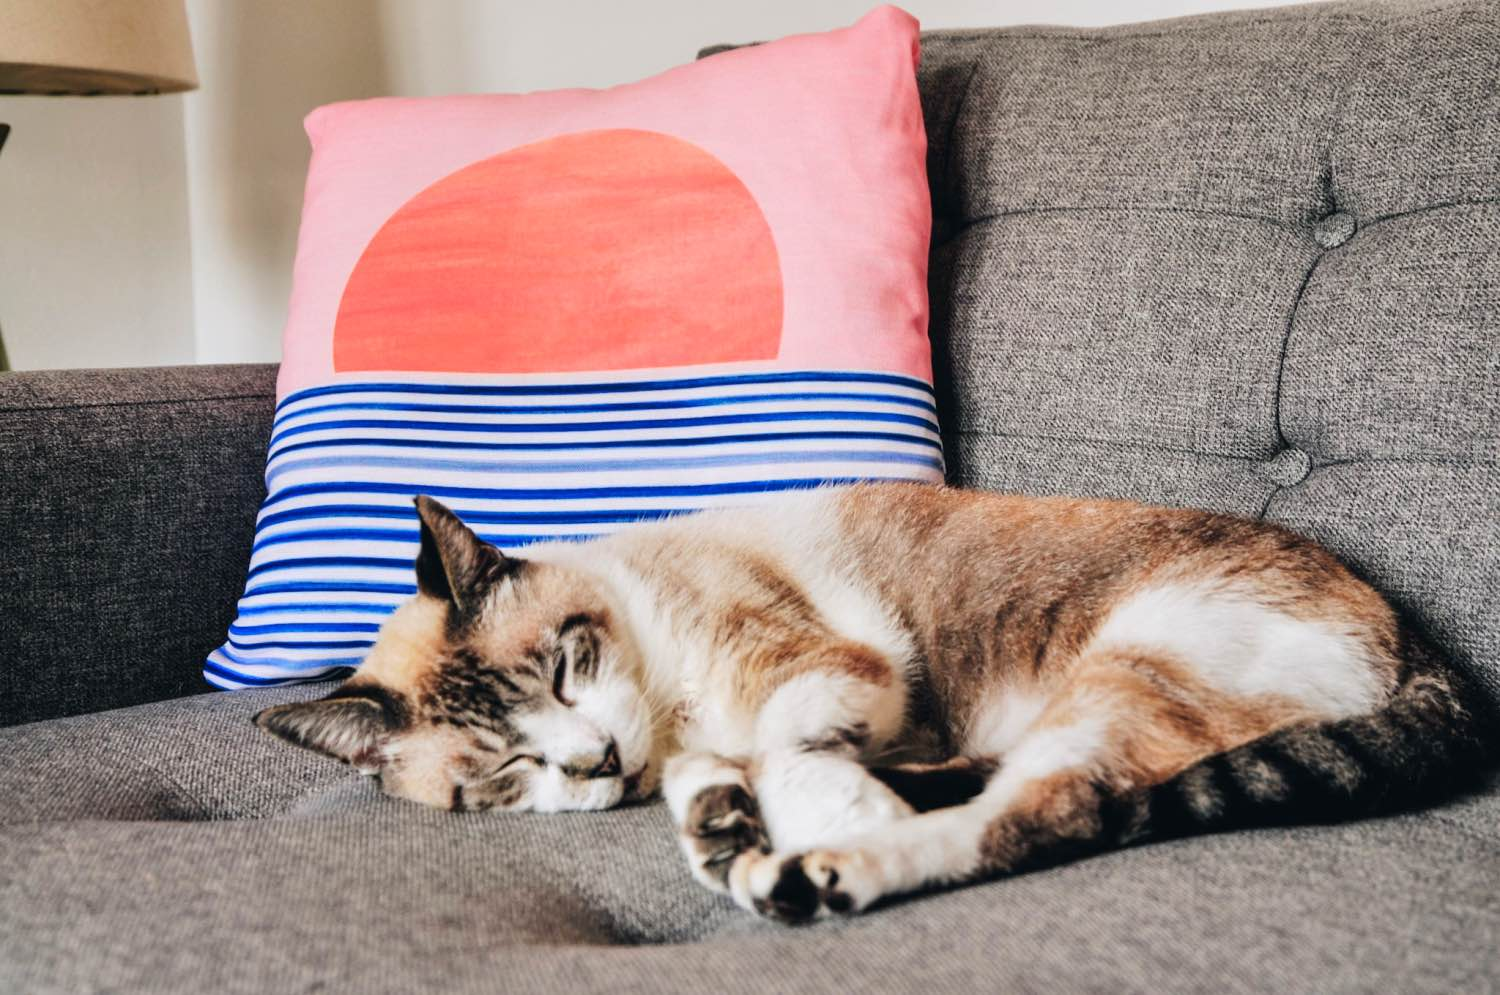 handsome the cat sleeping with a society6 pillow